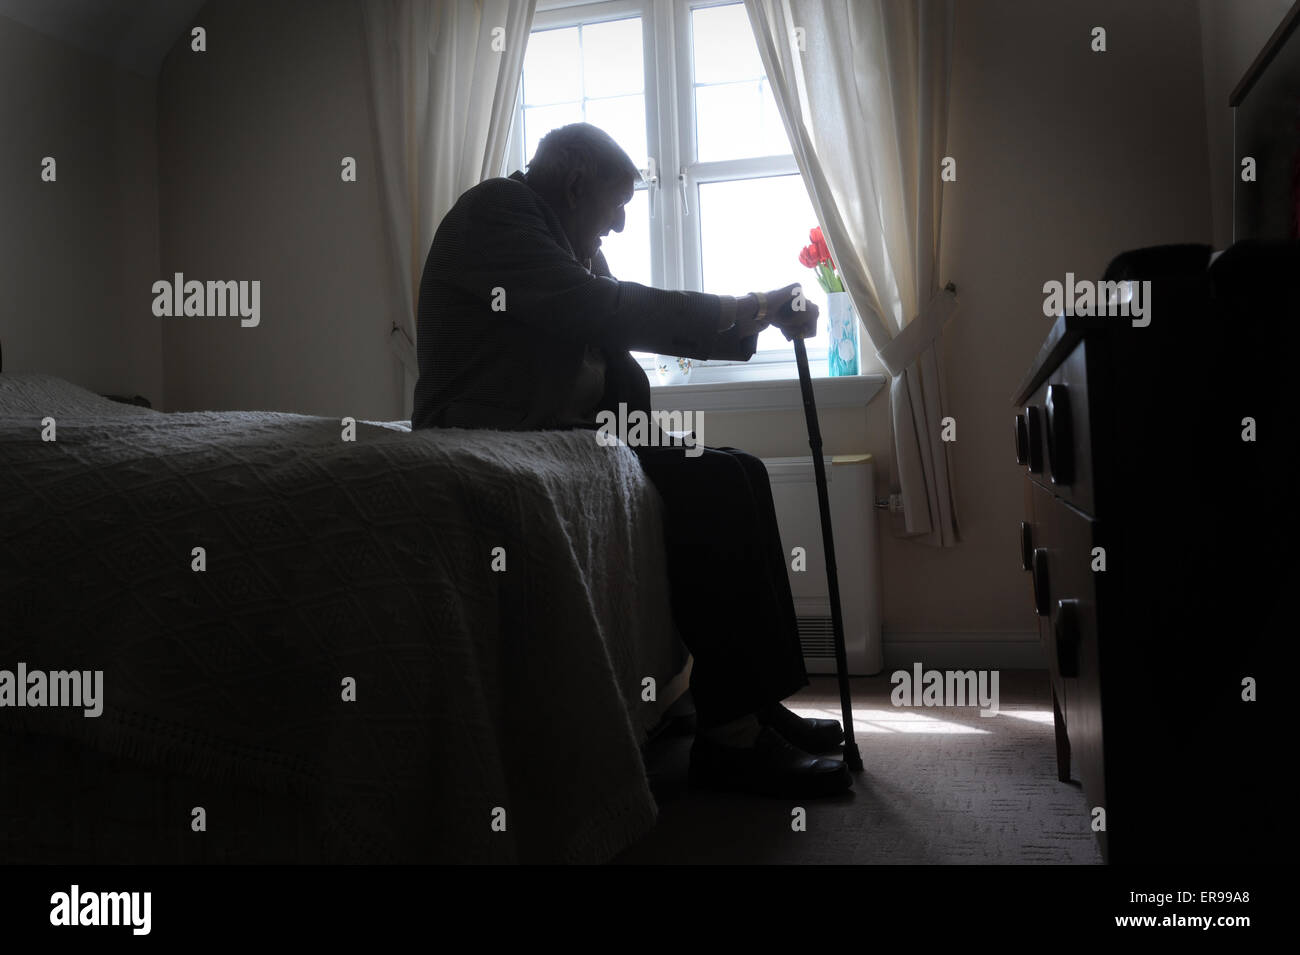 Silhouetted old age pensioner re loneliness lonely oap retirement depression man men depressed alone elderly care home uk cry